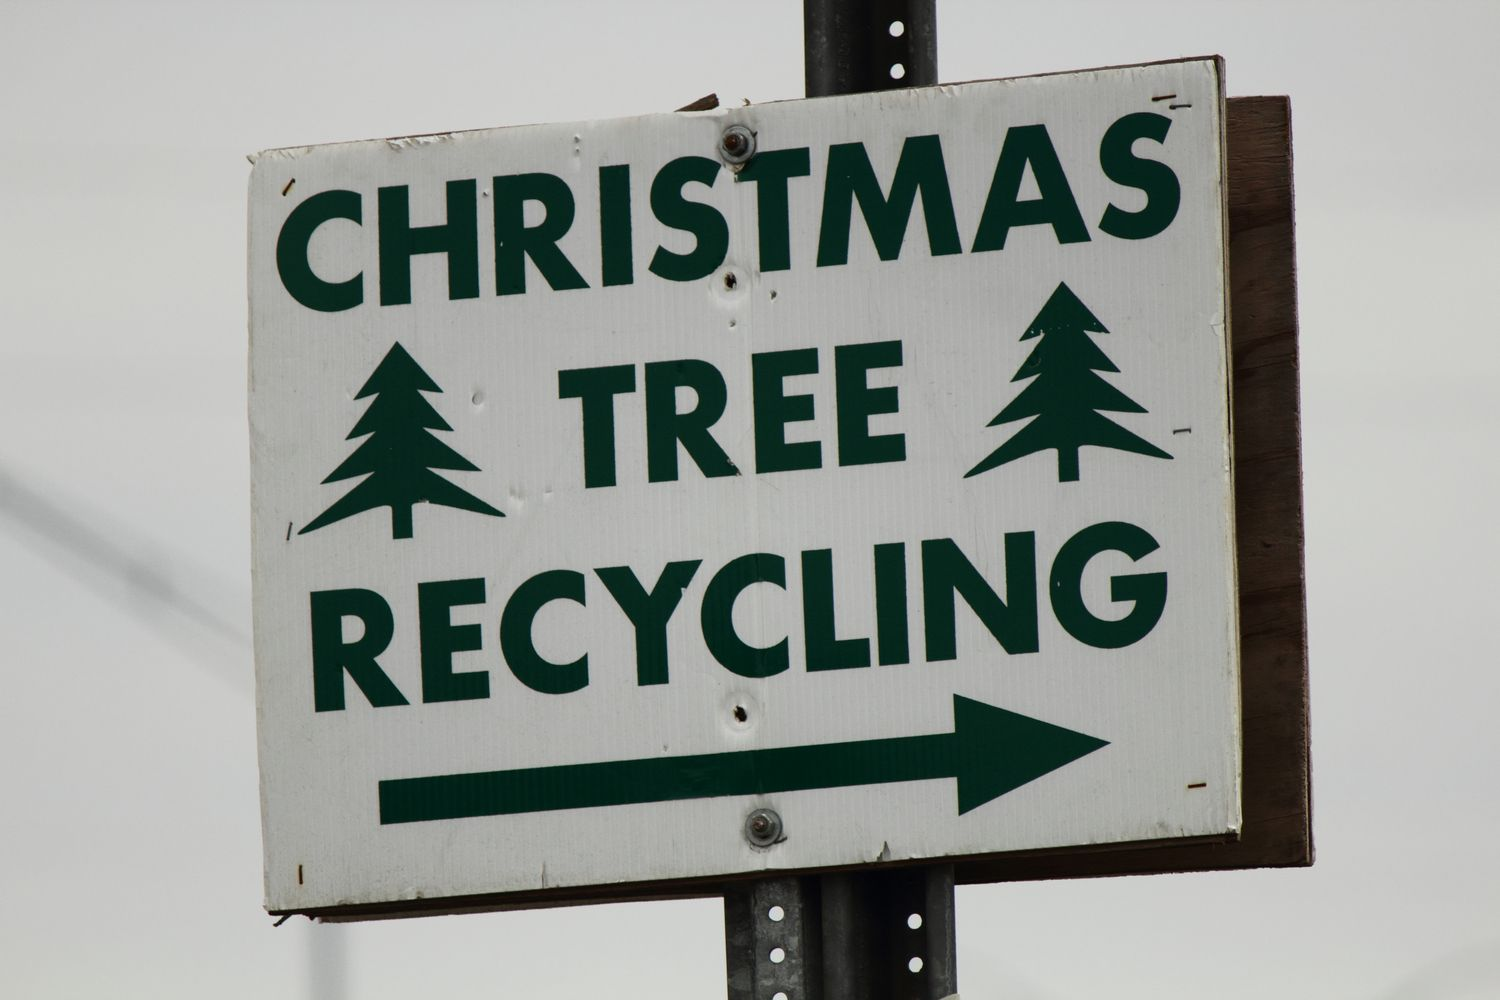 Christmas tree recycling road sign